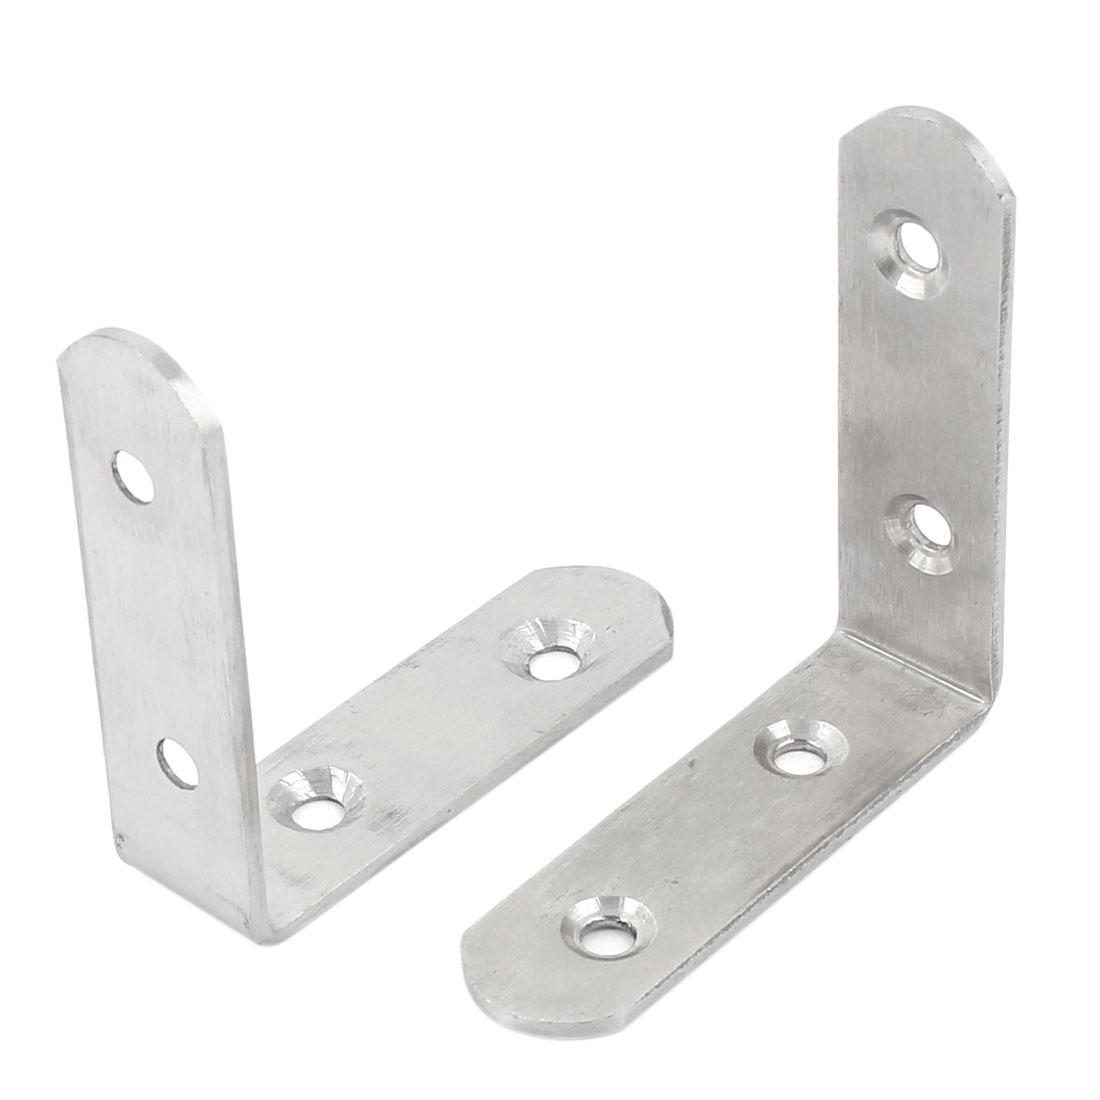 2 Pcs L Shape Corner Brace Right Angle Bracket 65mm x 65mm x 20mm